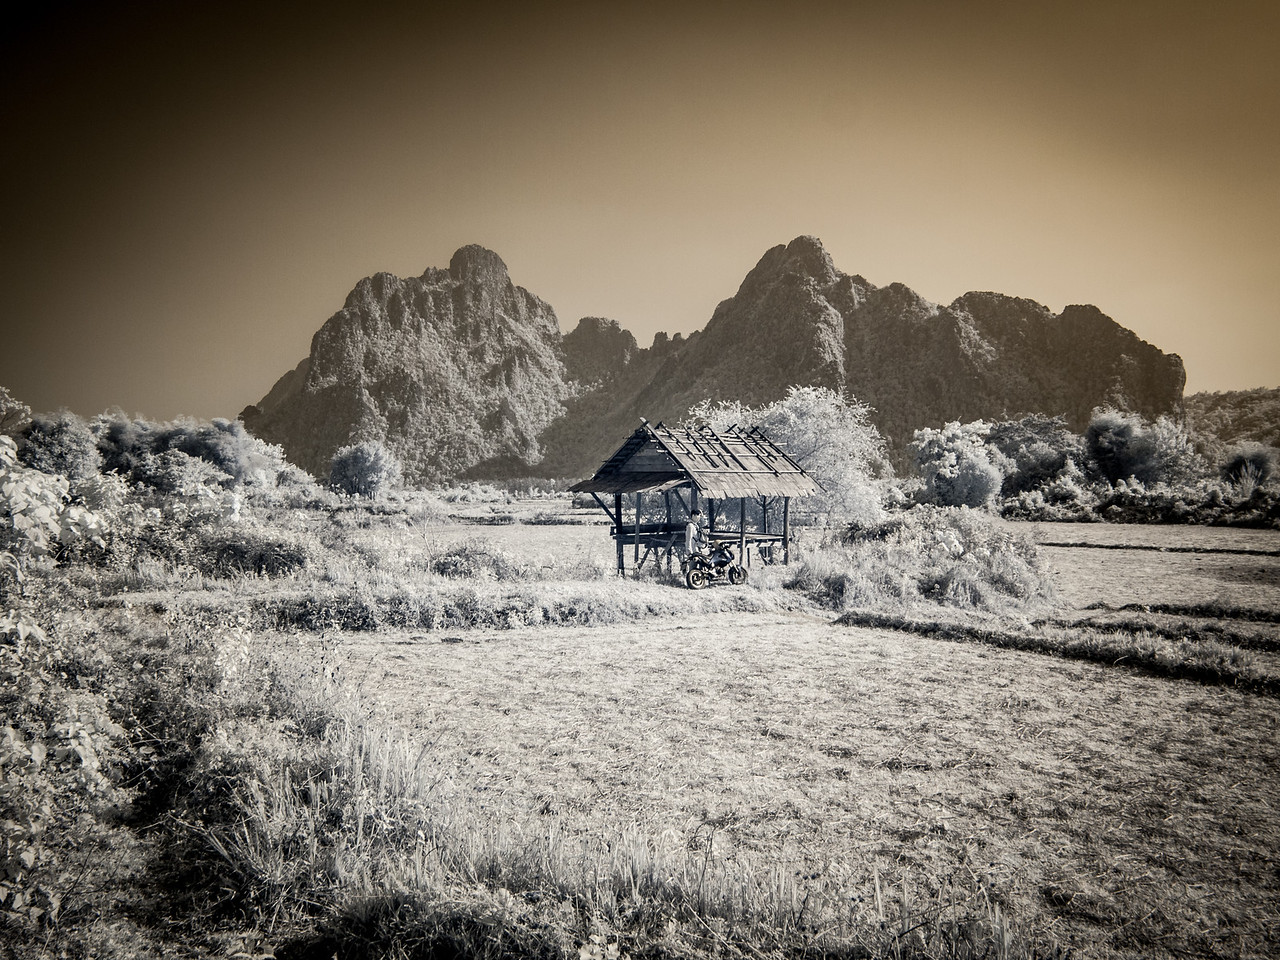 An infrared shot of a hut used by field workers to rest during the day.